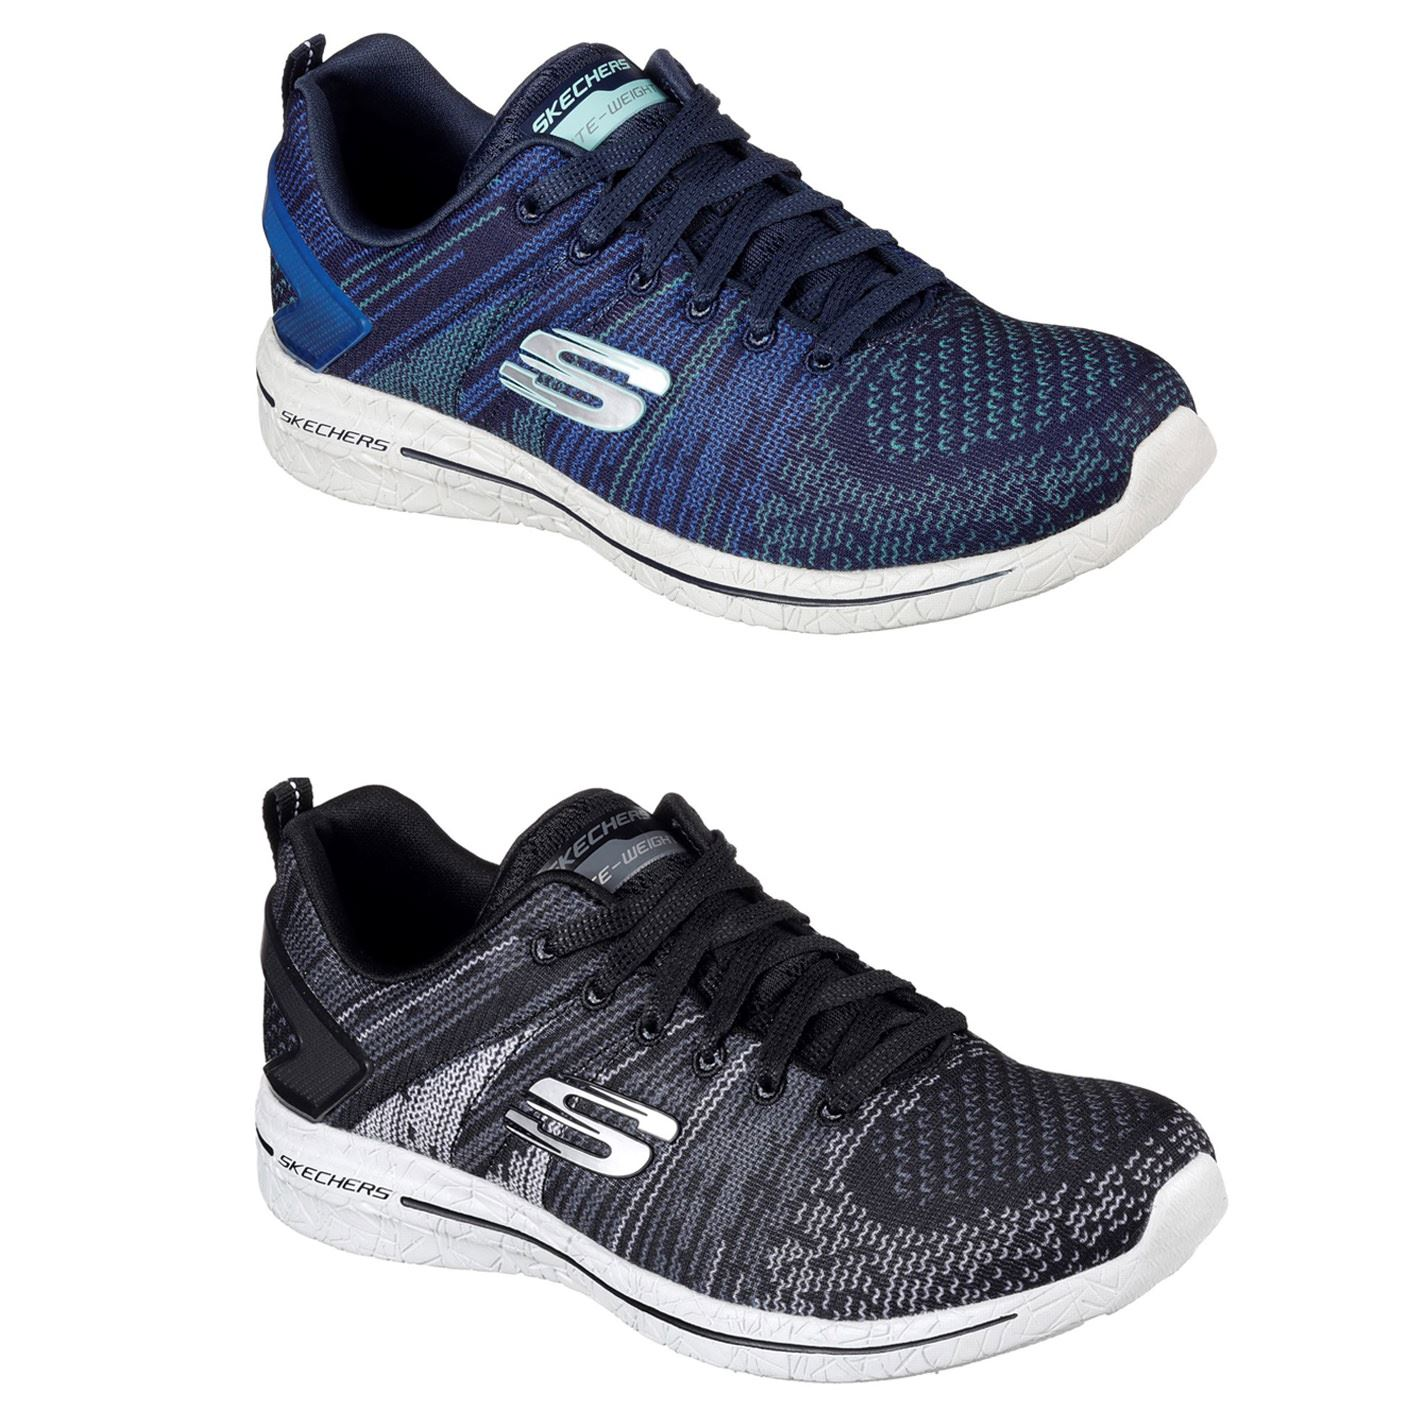 e58a0a3d97 ... Skechers Burst 2 Trainers Ladies Shoes Womens Footwear ...